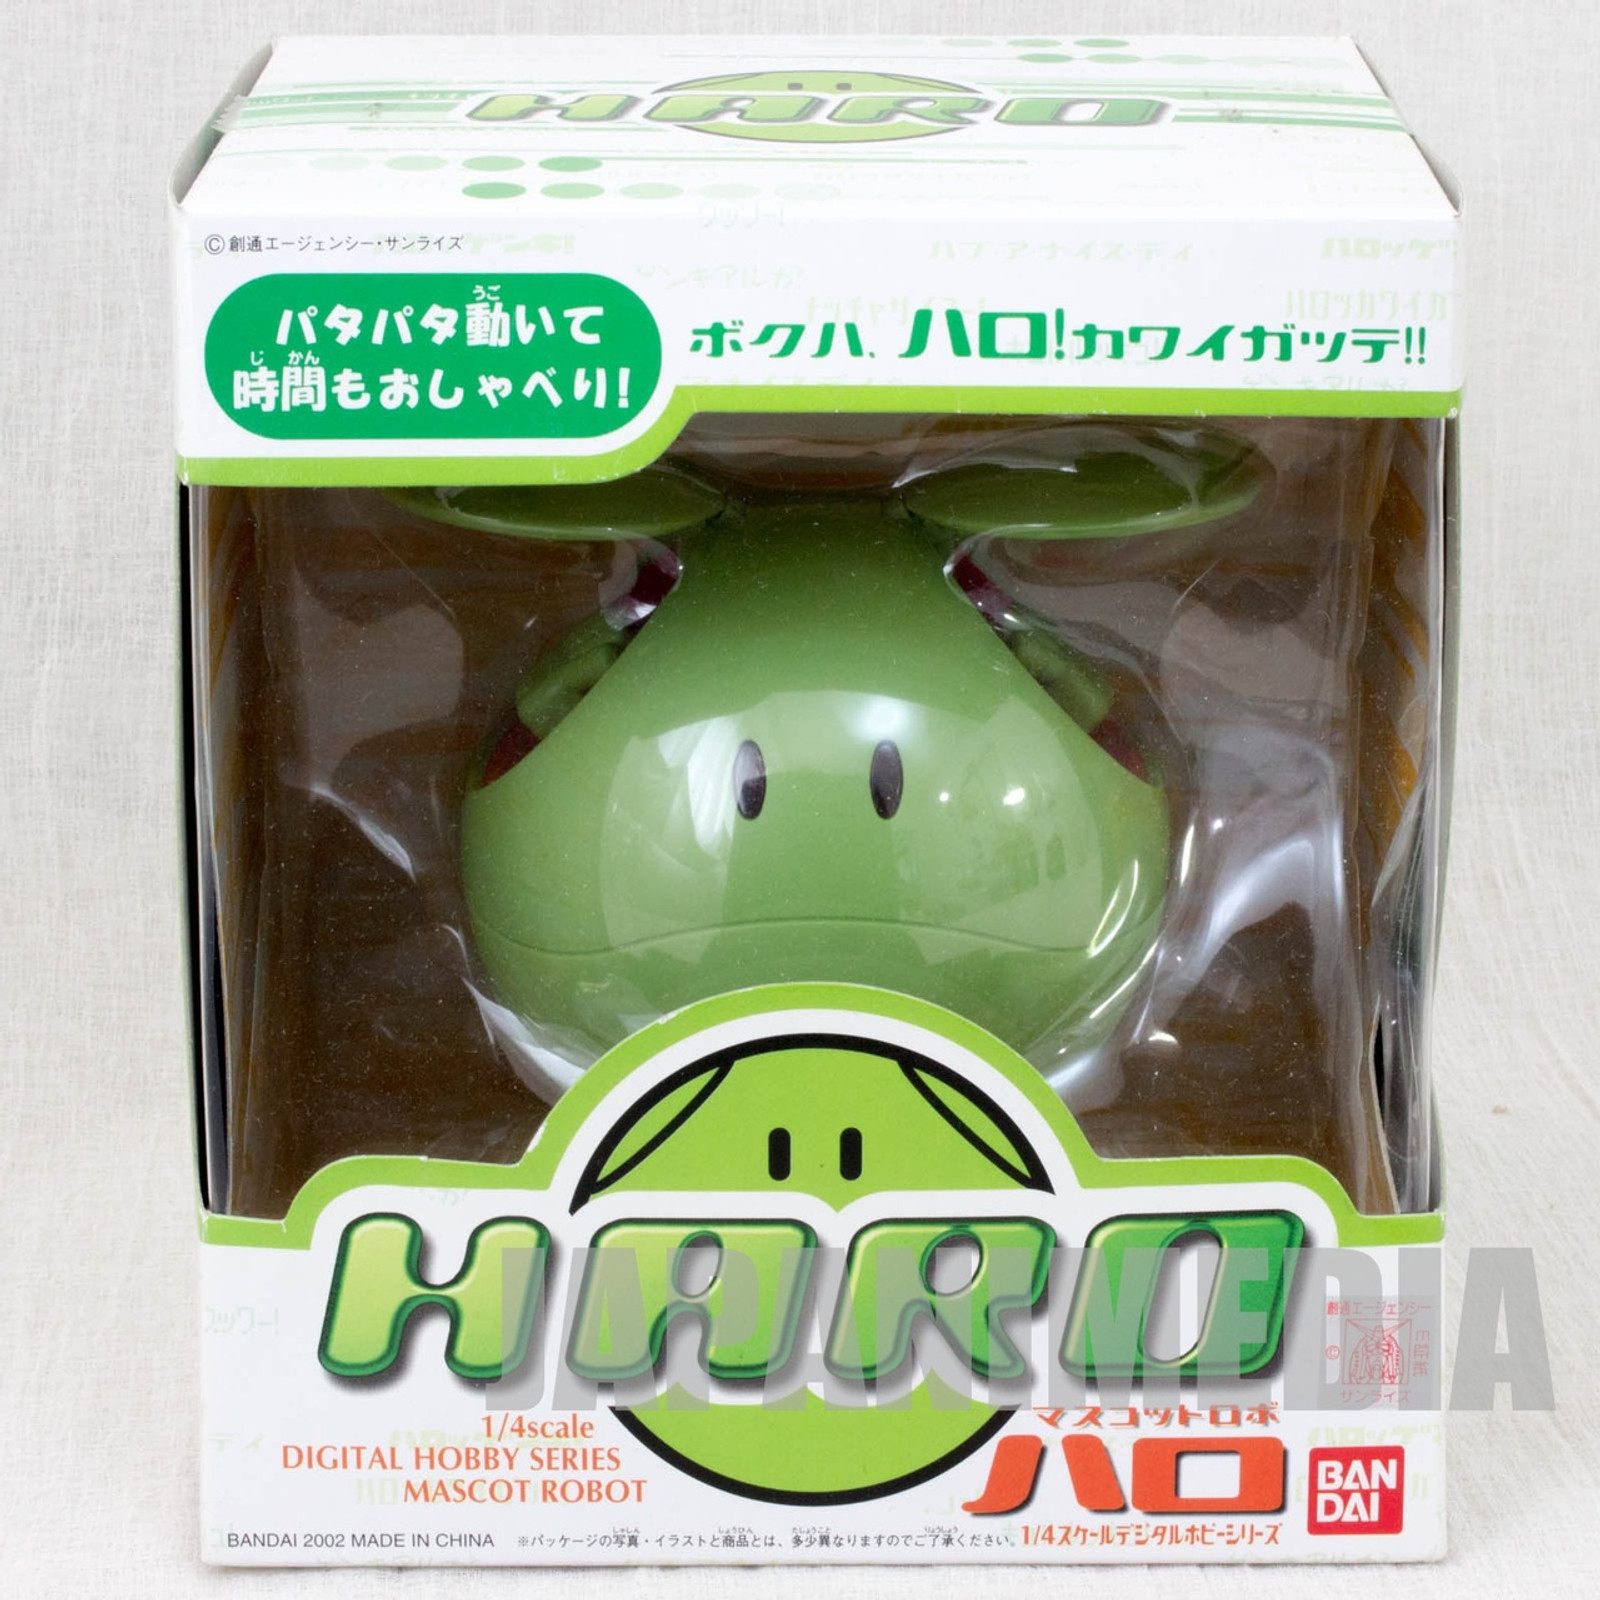 Gundam Mascot Robot HARO Talking Figure Scale 1/4 Green Bandai JAPAN ANIME